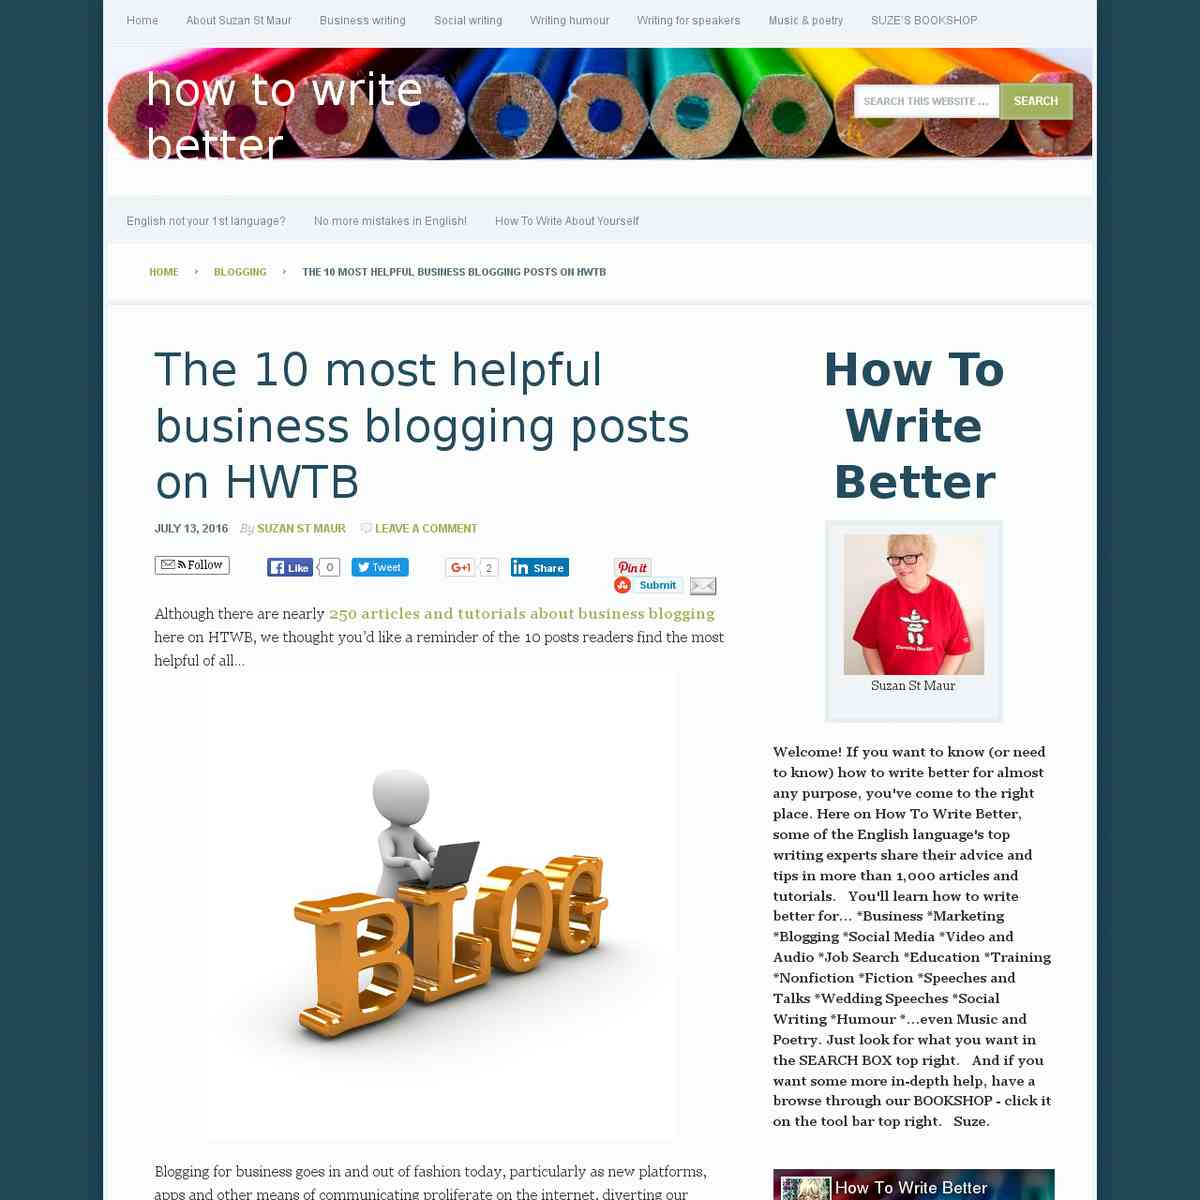 10 most helpful business blogging posts ever on HTWB | How To Write Better